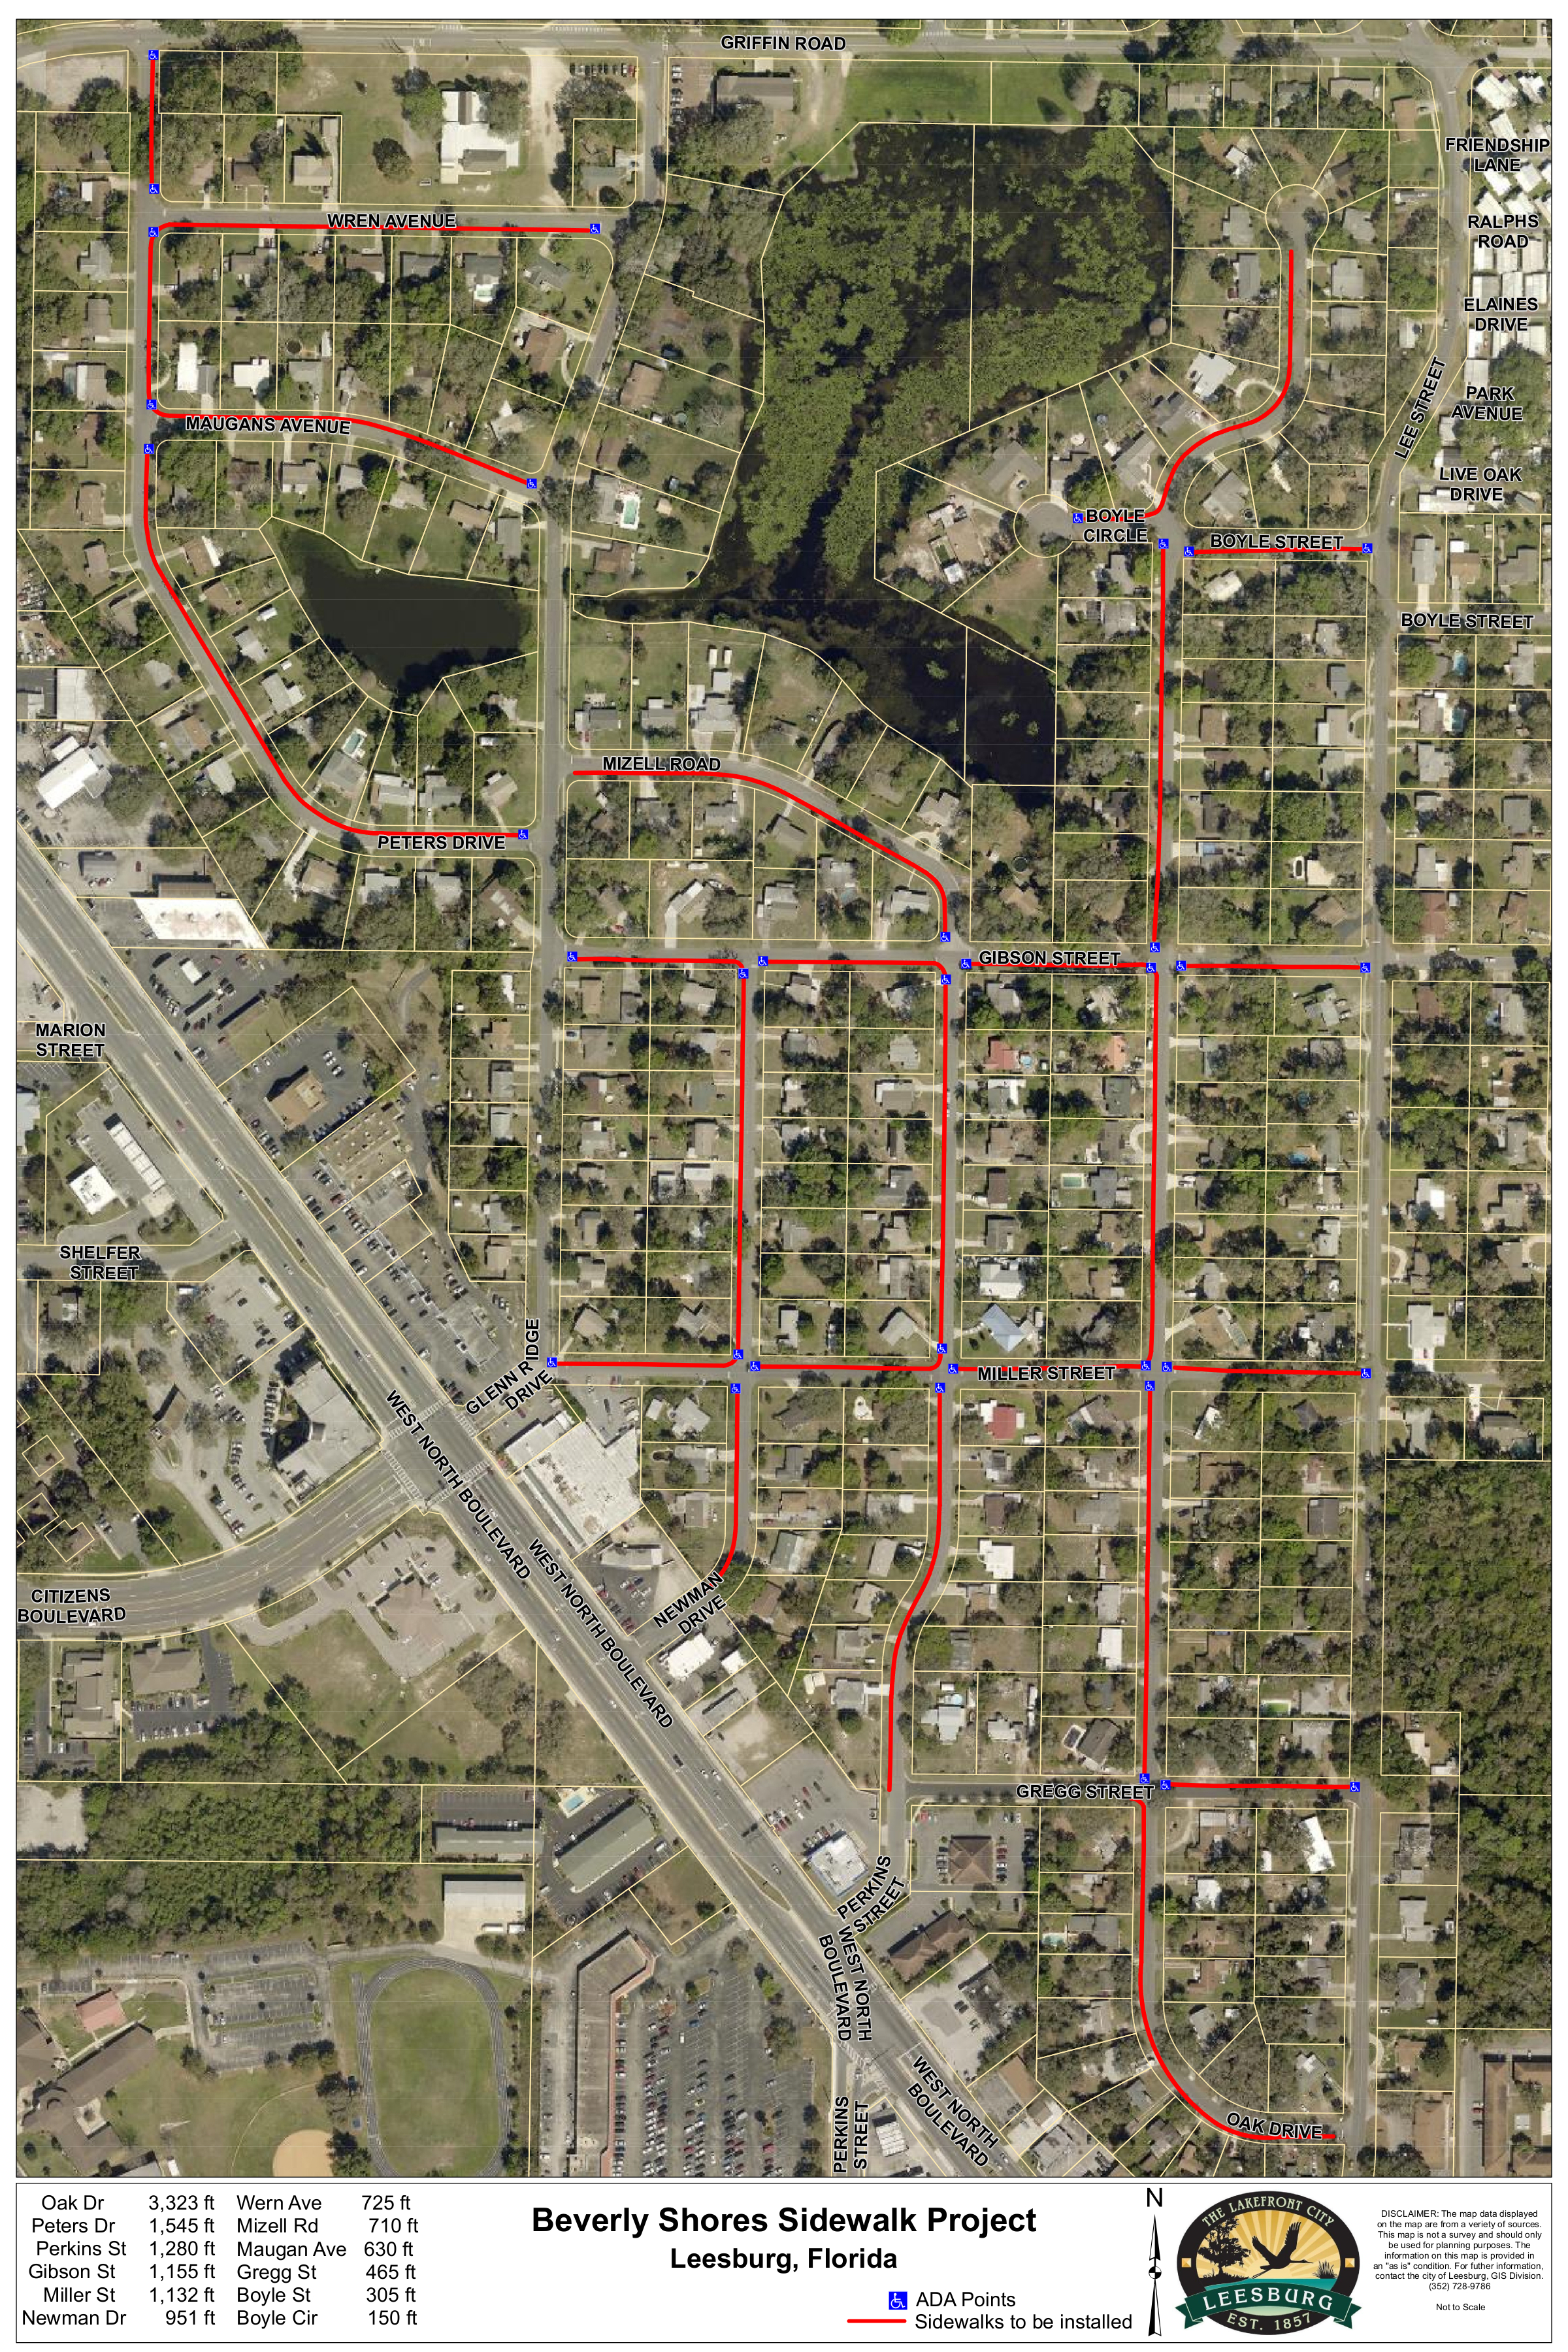 Map of sidewalk plan for area south of Beverly Shores Elementary